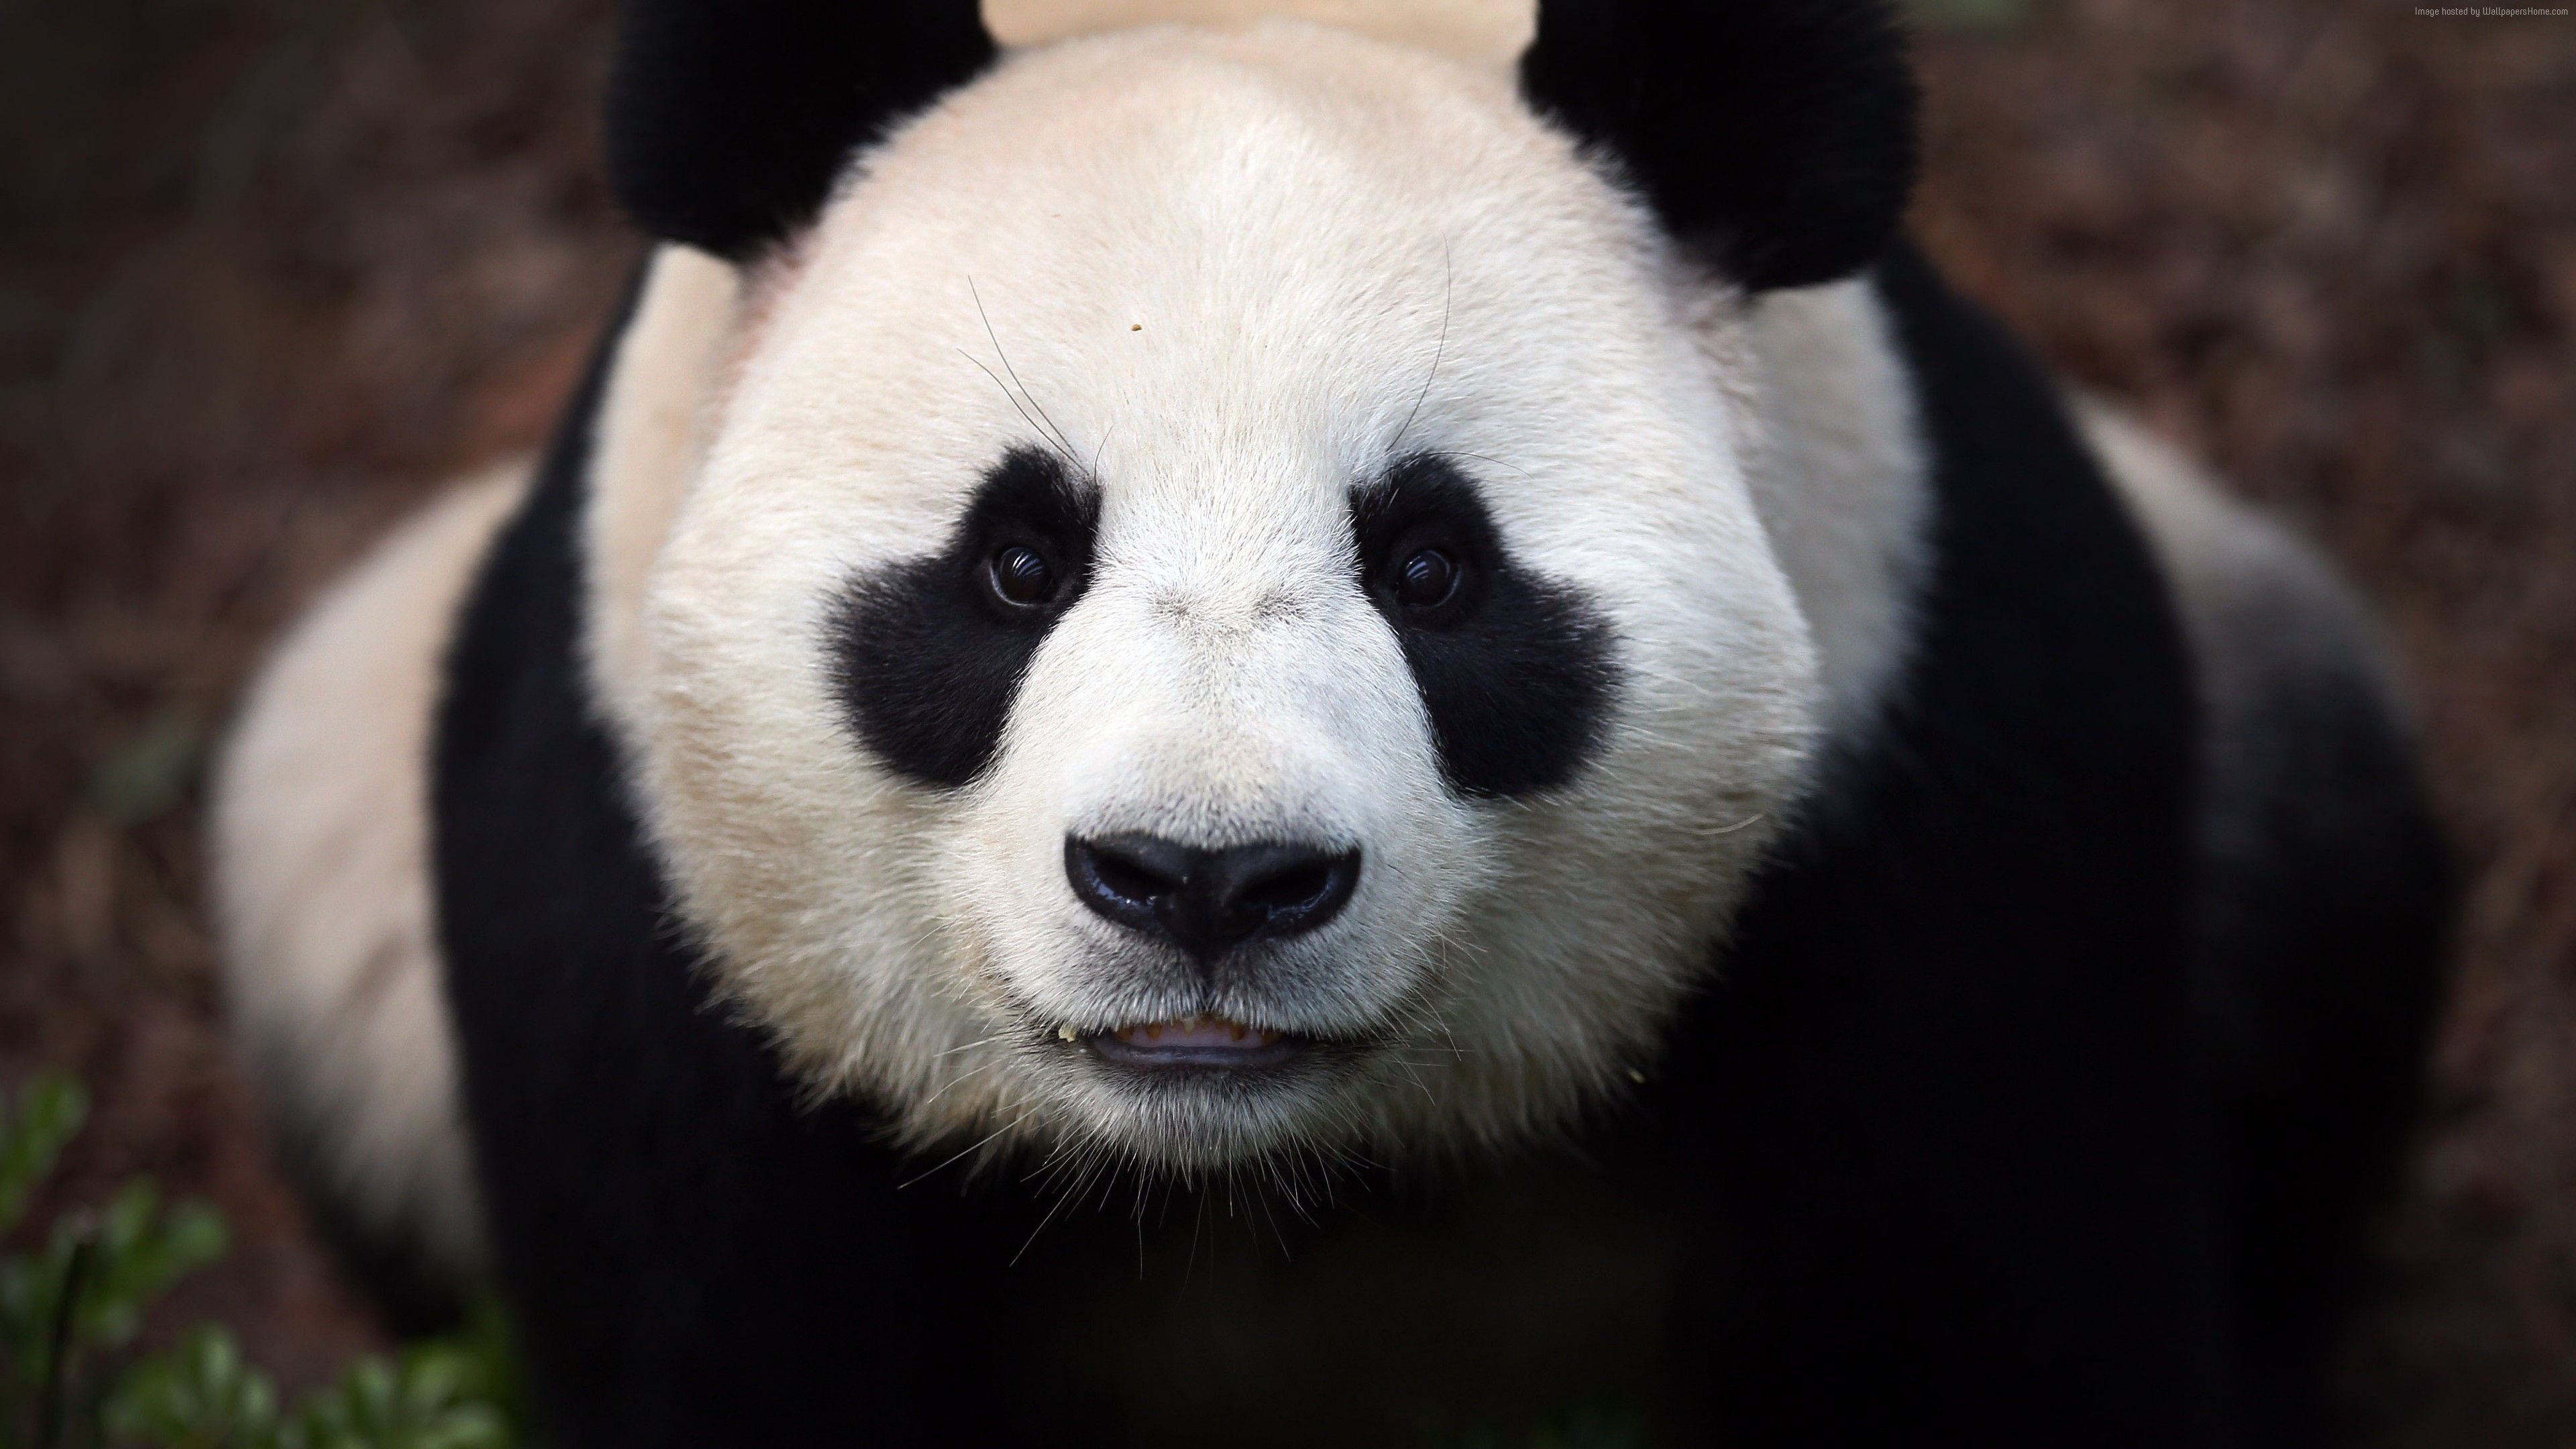 Wallpaper Сhina panda, bears, China, animal, zoo, black, white, eyes, wild, nature, Animals